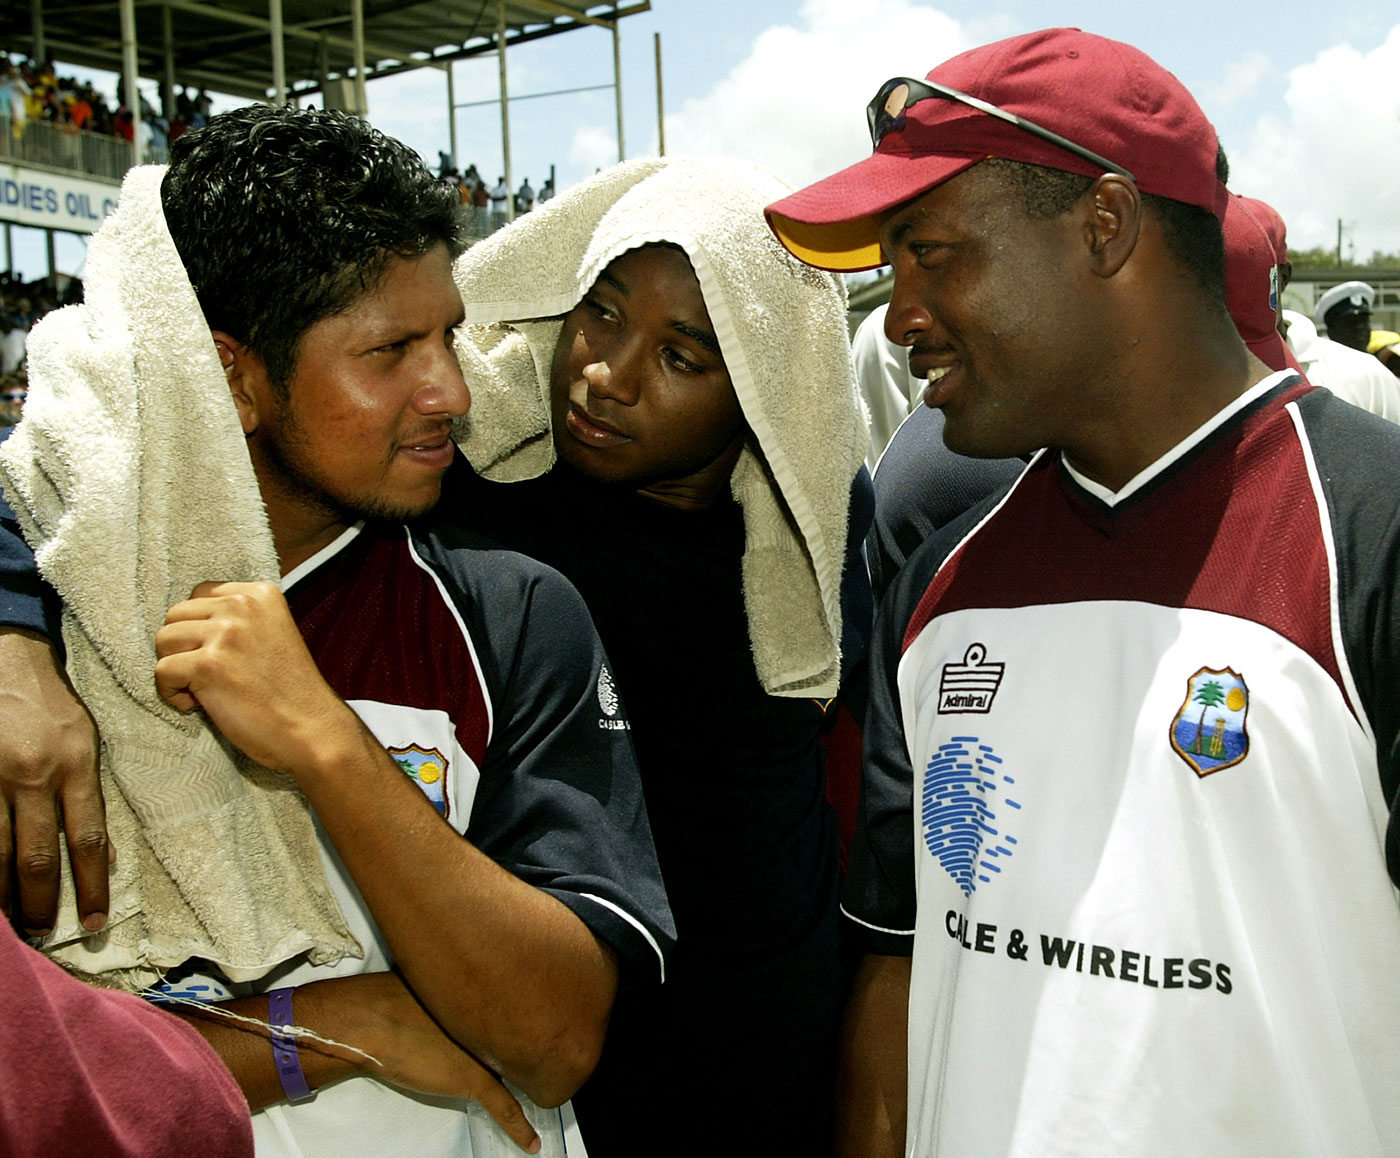 Sarwan and Lara get chatting after the record chase in Antigua against Australia in 2003. Sarwan scored a century in the second innings and Lara 60